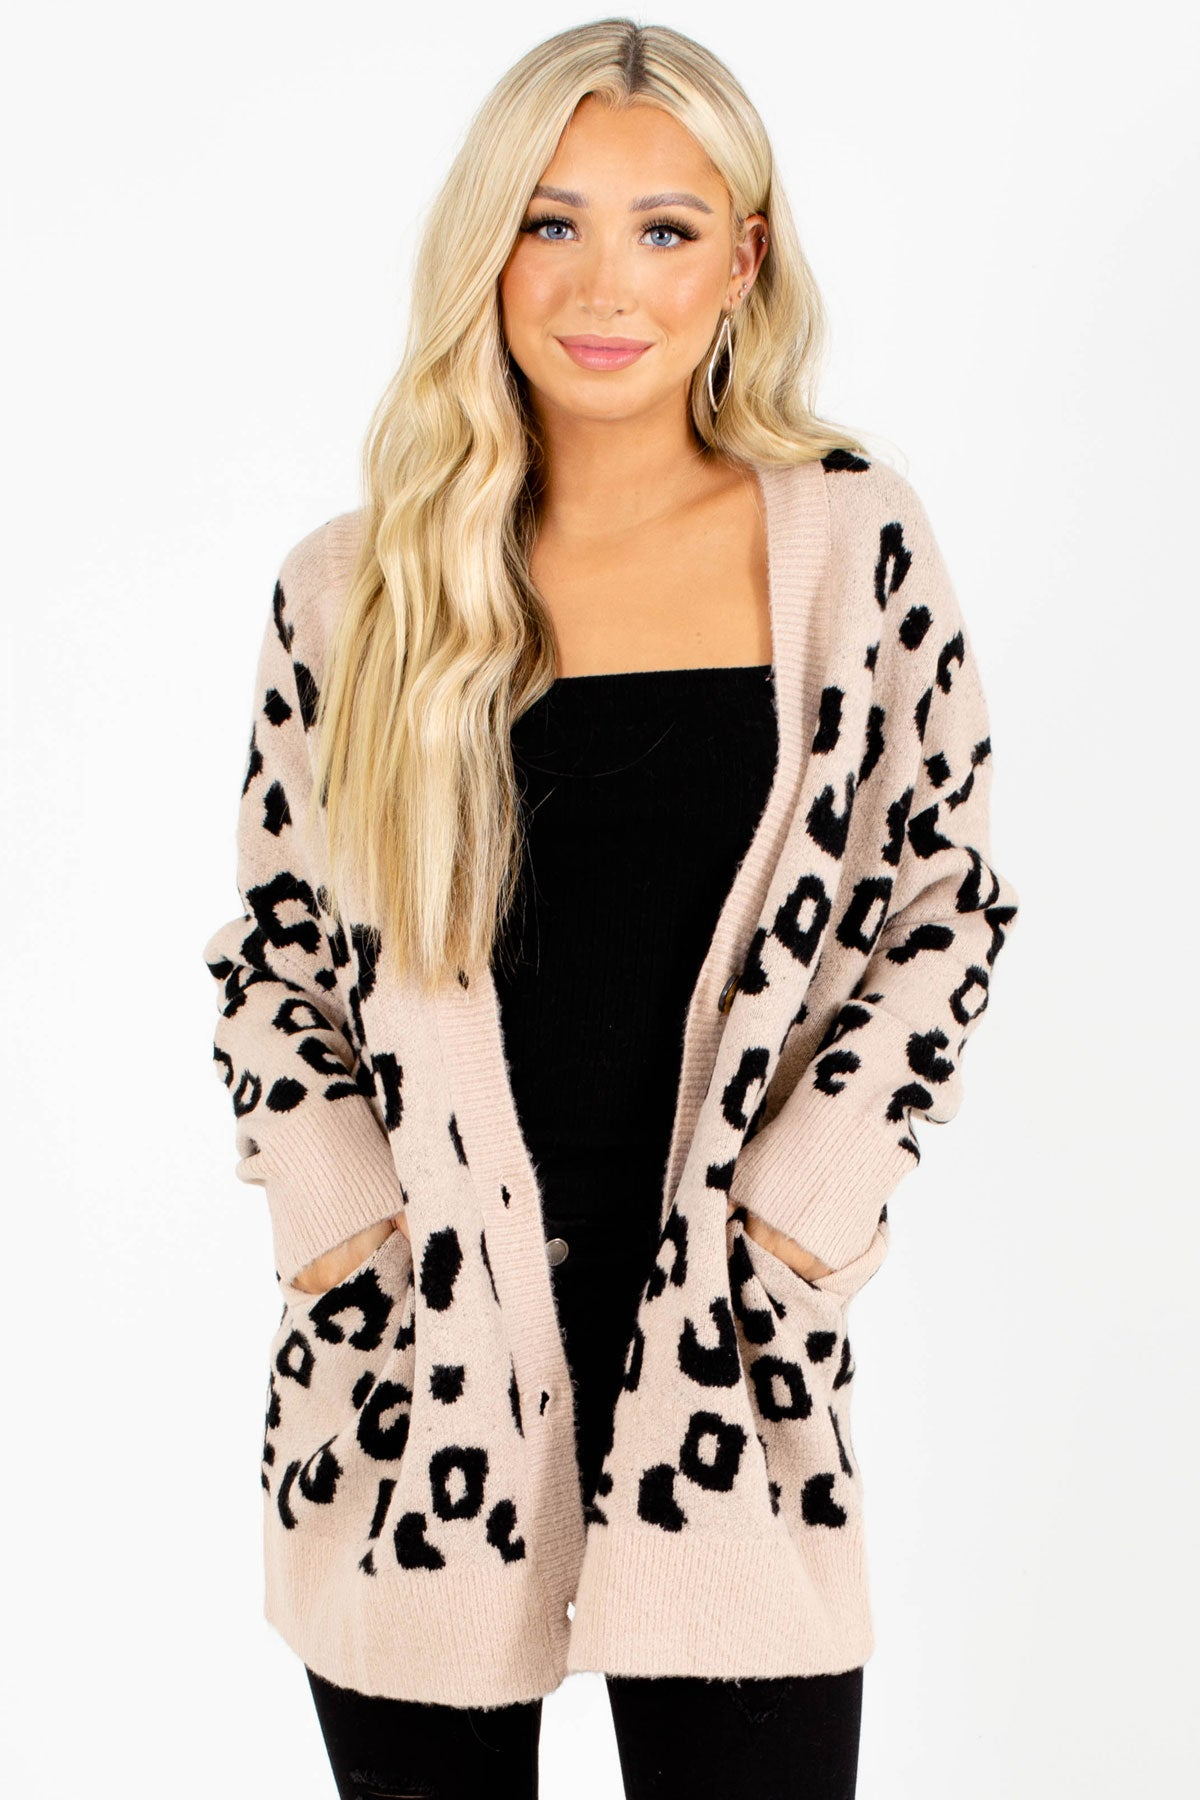 Brown and Black Leopard Print Patterned Boutique Cardigans for Women